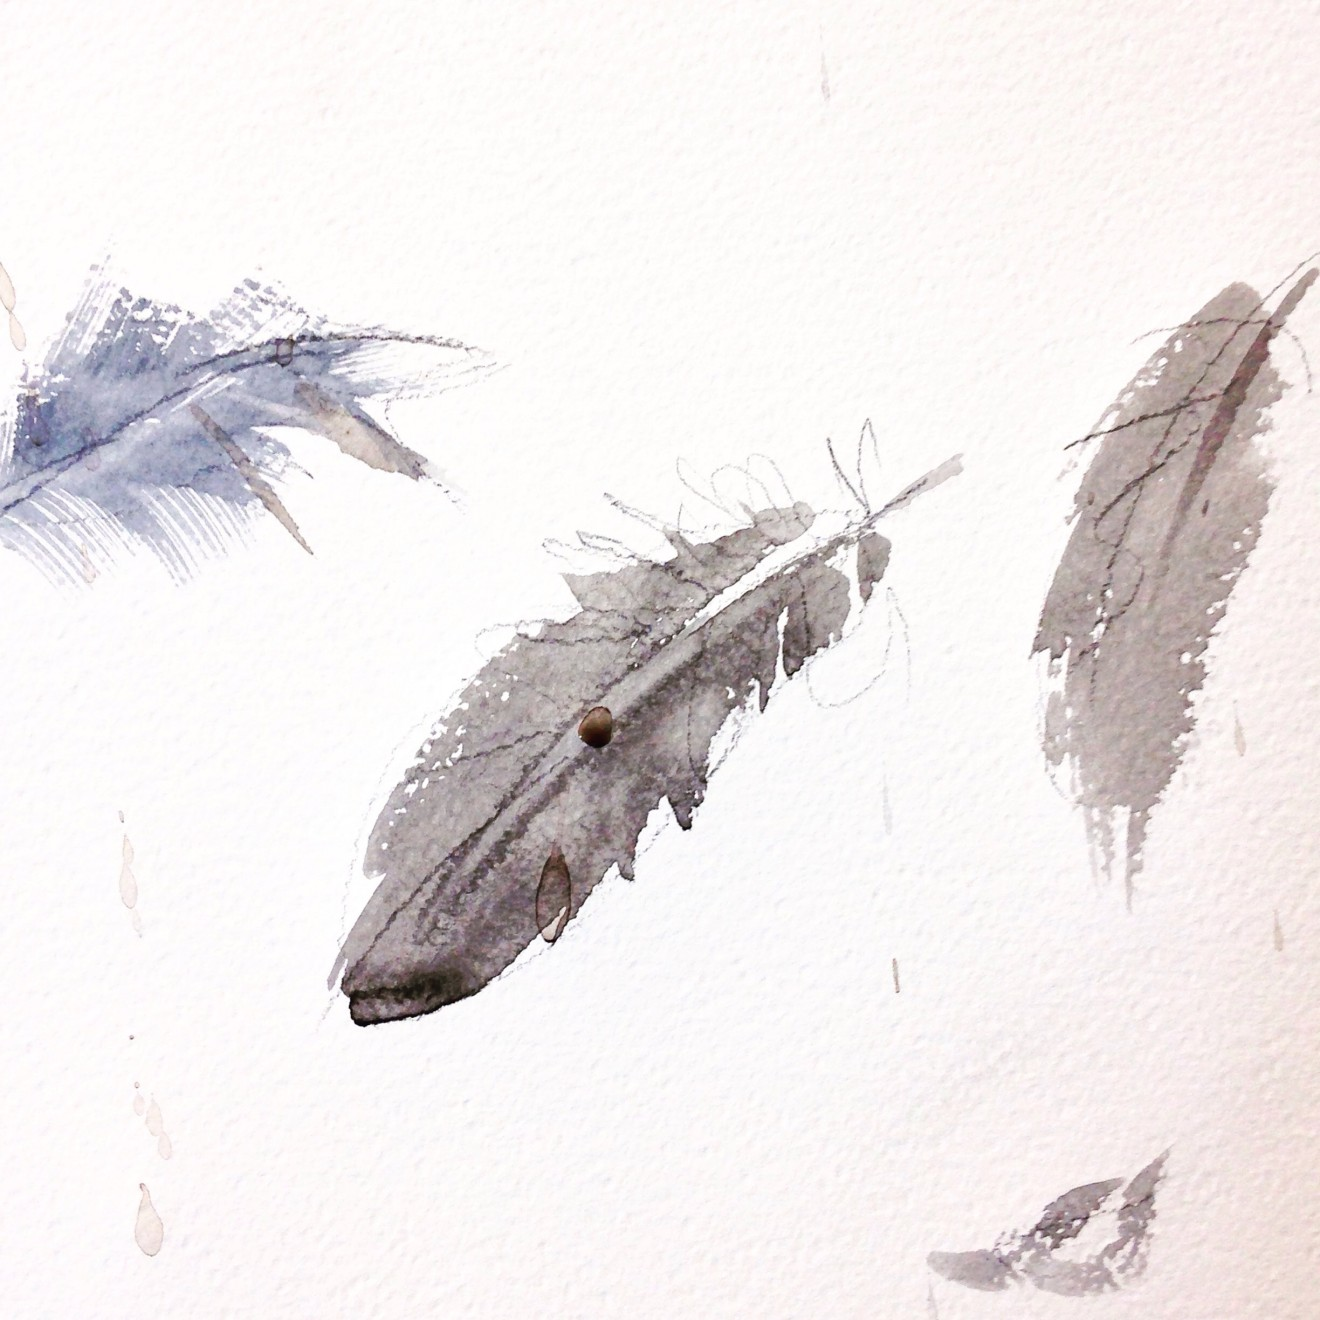 Andrea Mancini, FourtyFive Feathers, 2015, watercolor.